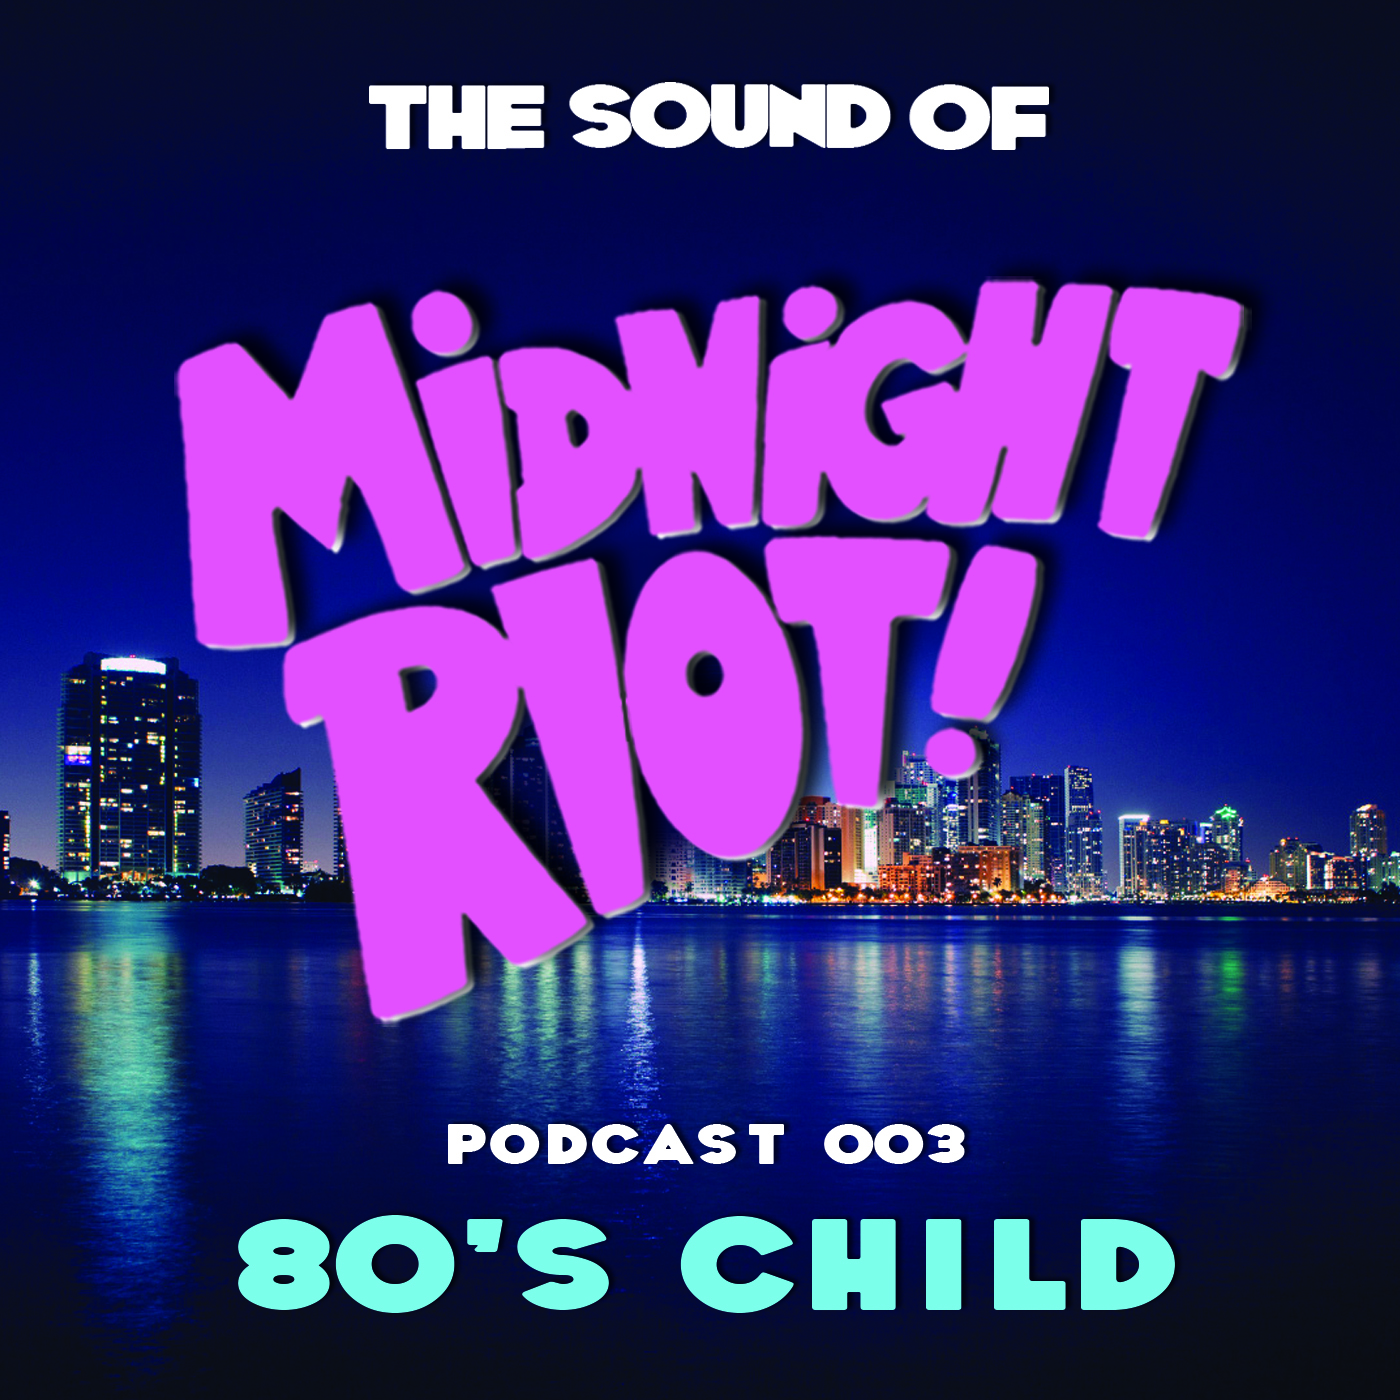 THE SOUND OF MIDNIGHT RIOT! - Podcast 003 80s Child